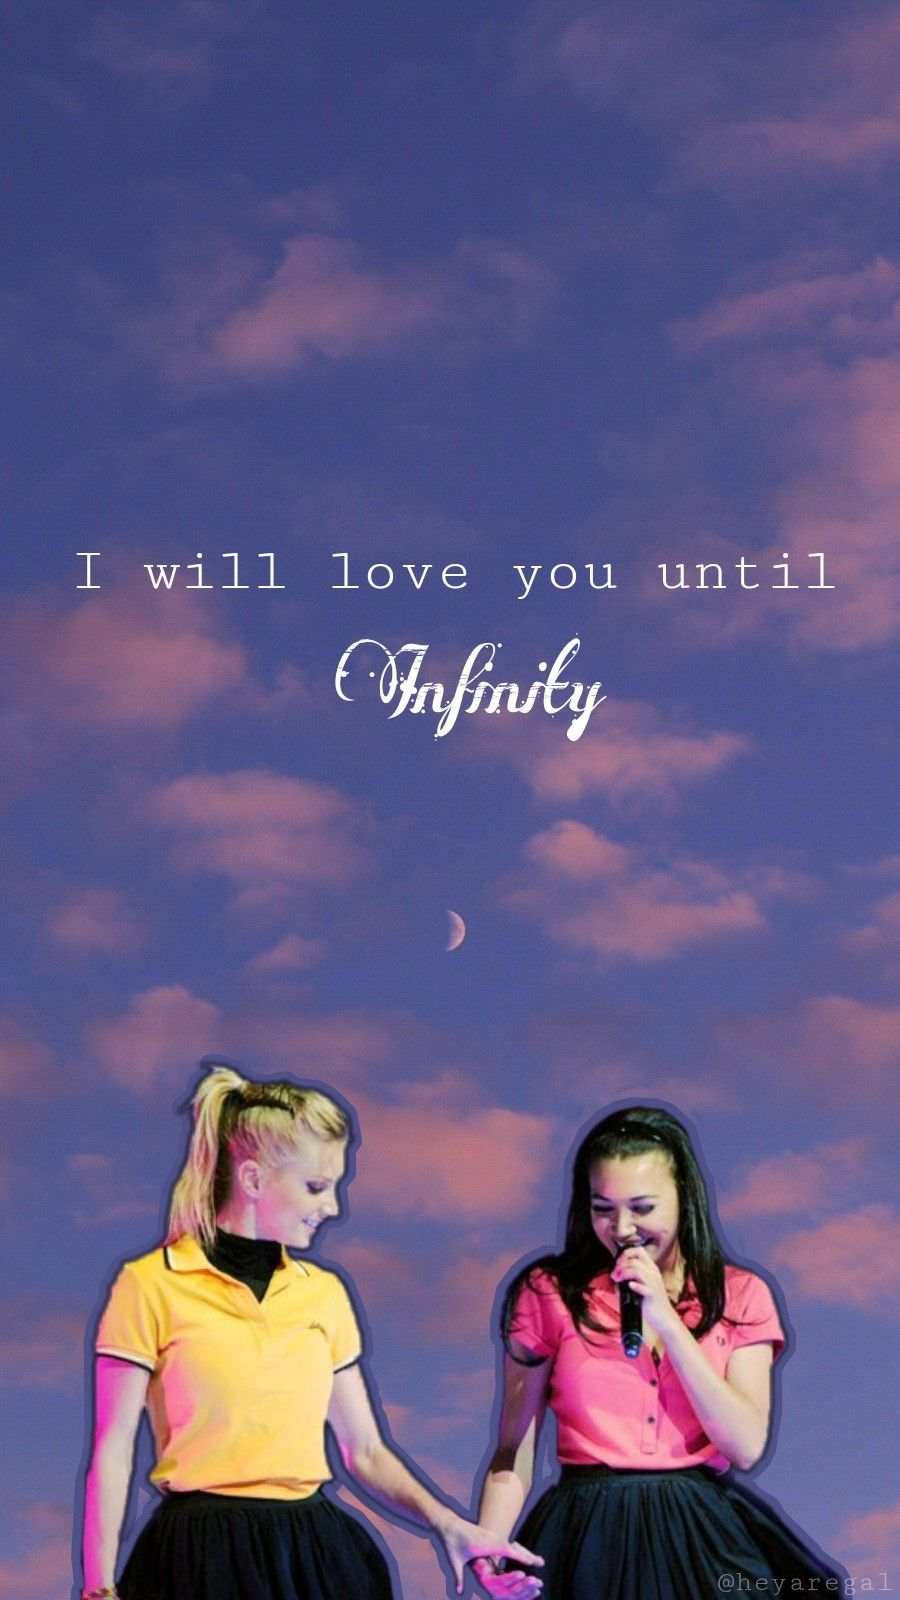 Brittana Lockscreen Made By Me Tell Me If You Like It